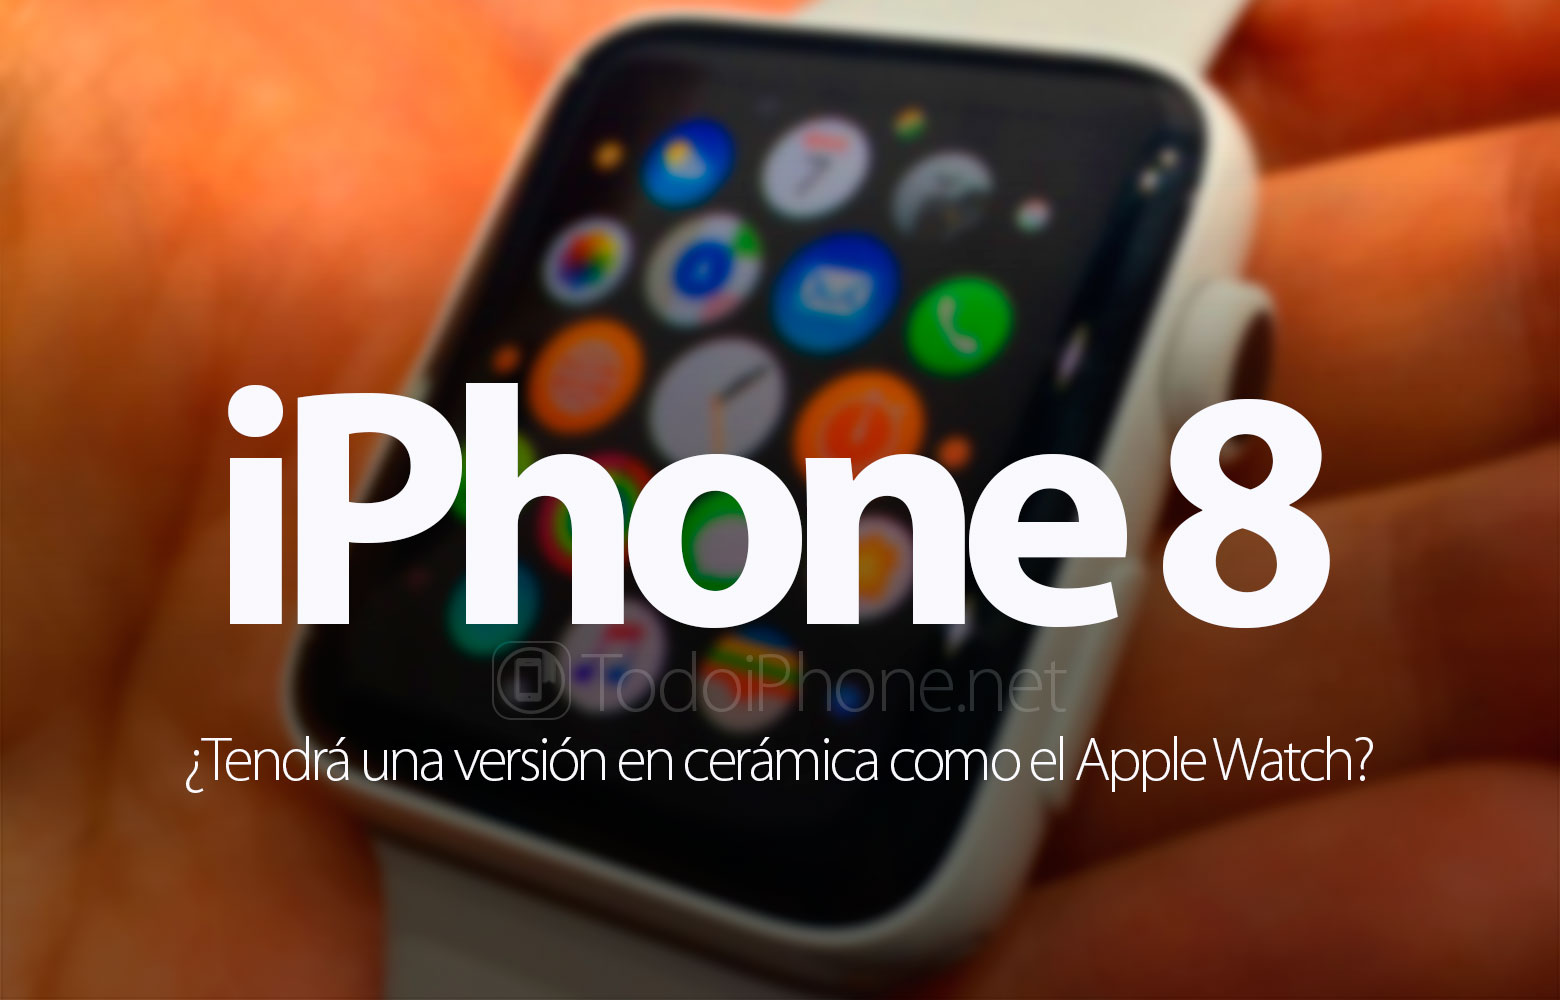 iphone-8-modelo-ceramica-apple-watch